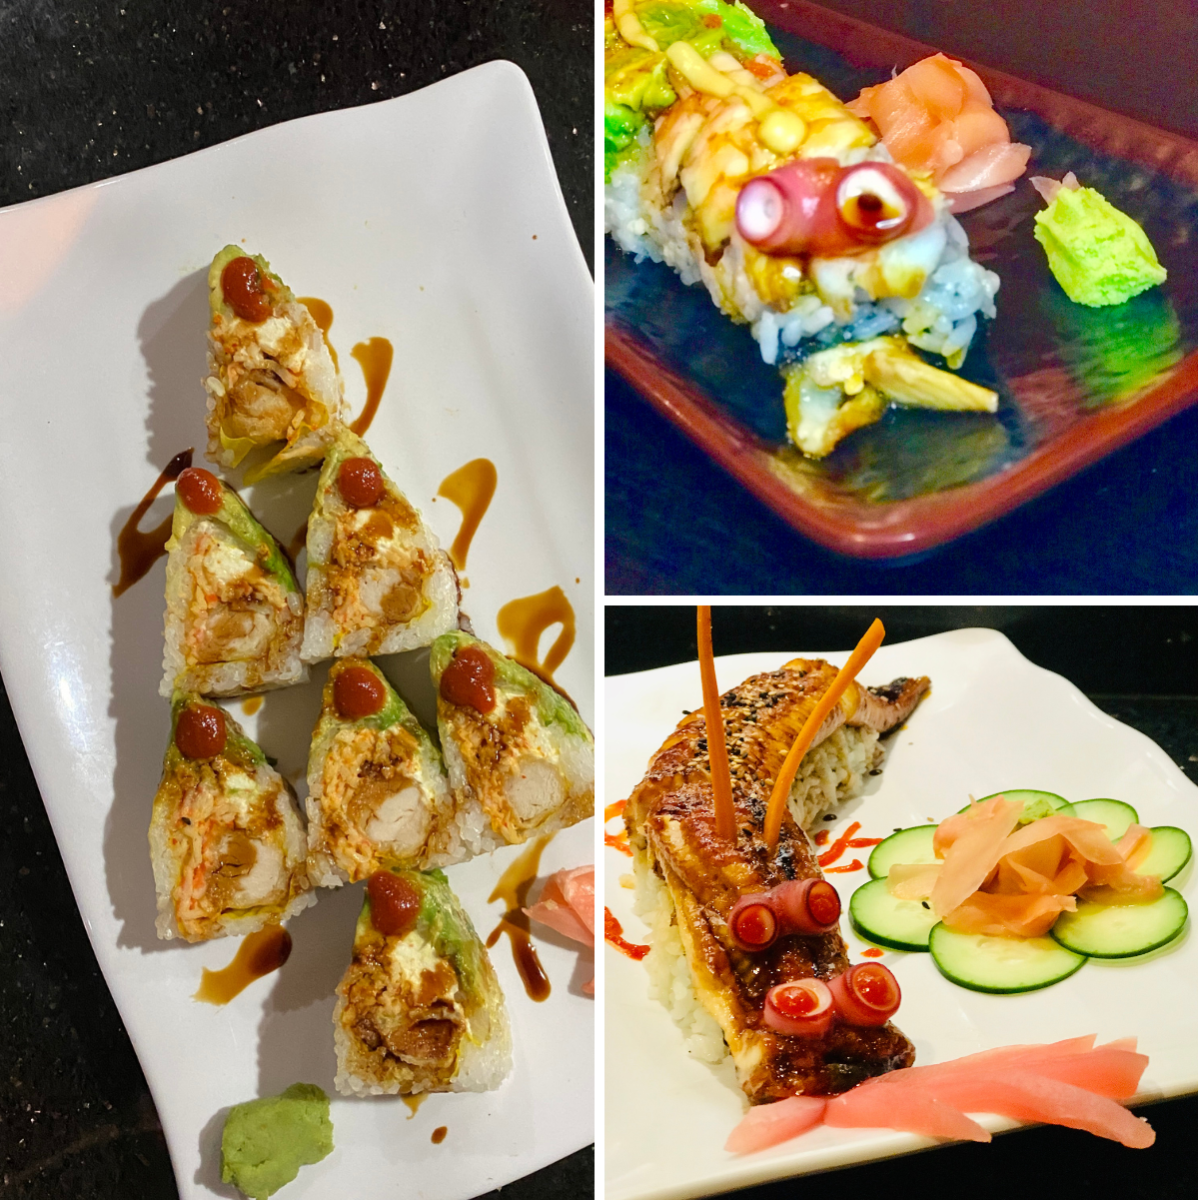 Selection of food from tokyo sushi in Beaumont, TX